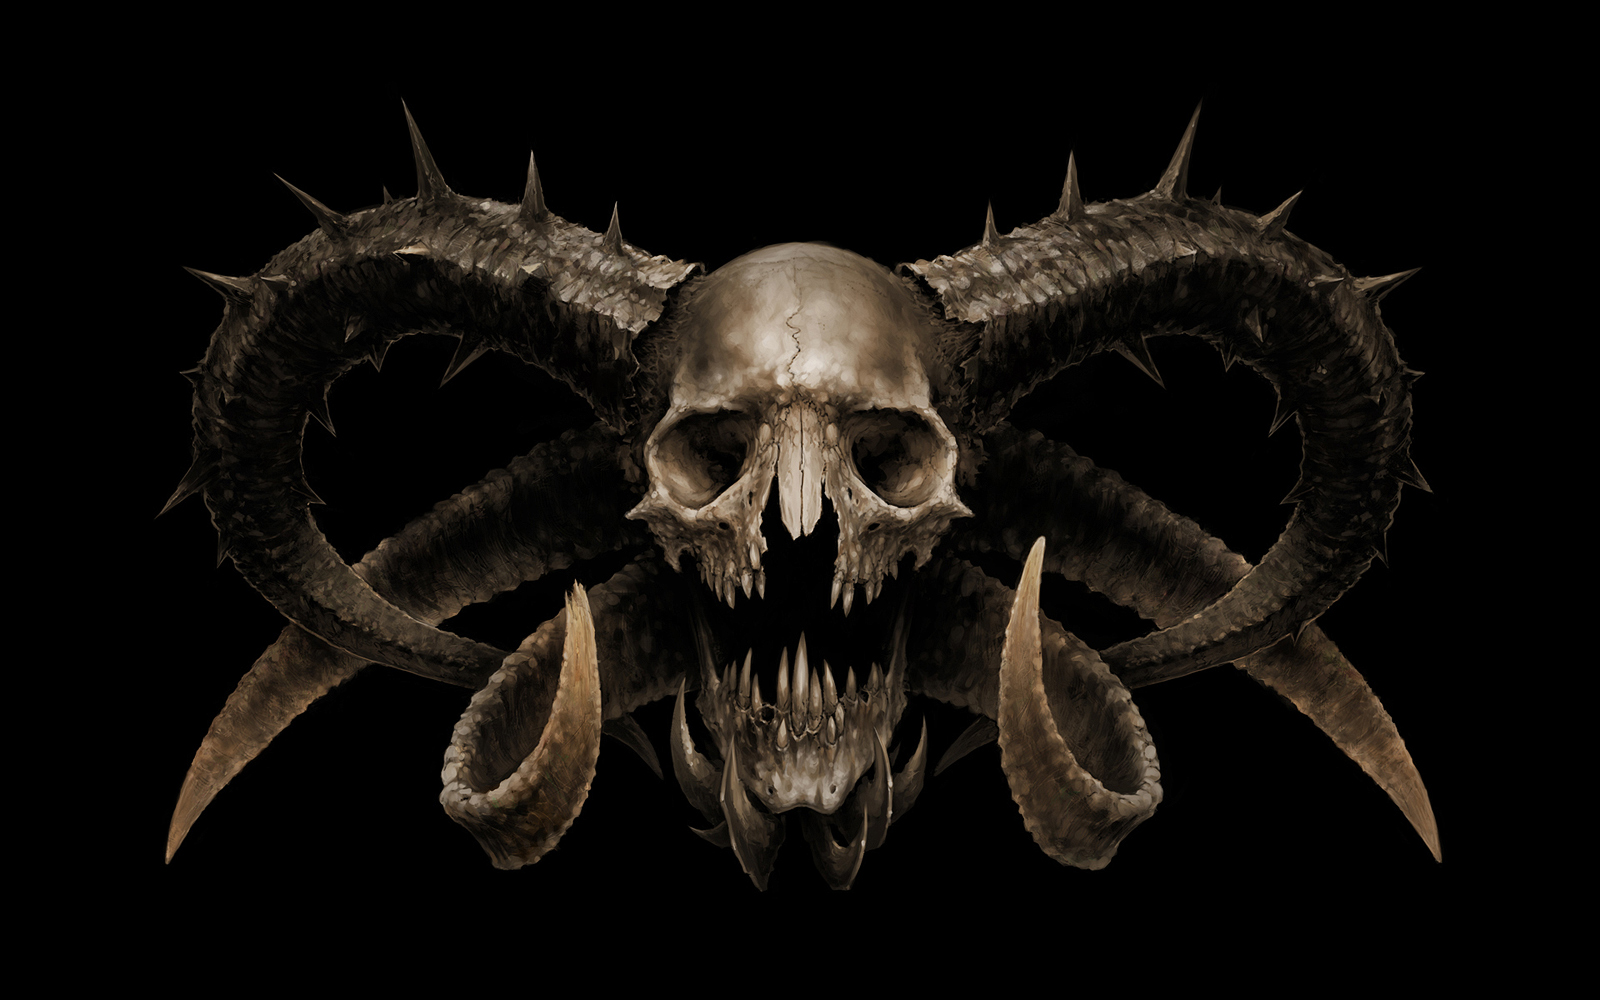 Skull Wallpapers   Desktop Backgrounds 1600x1000